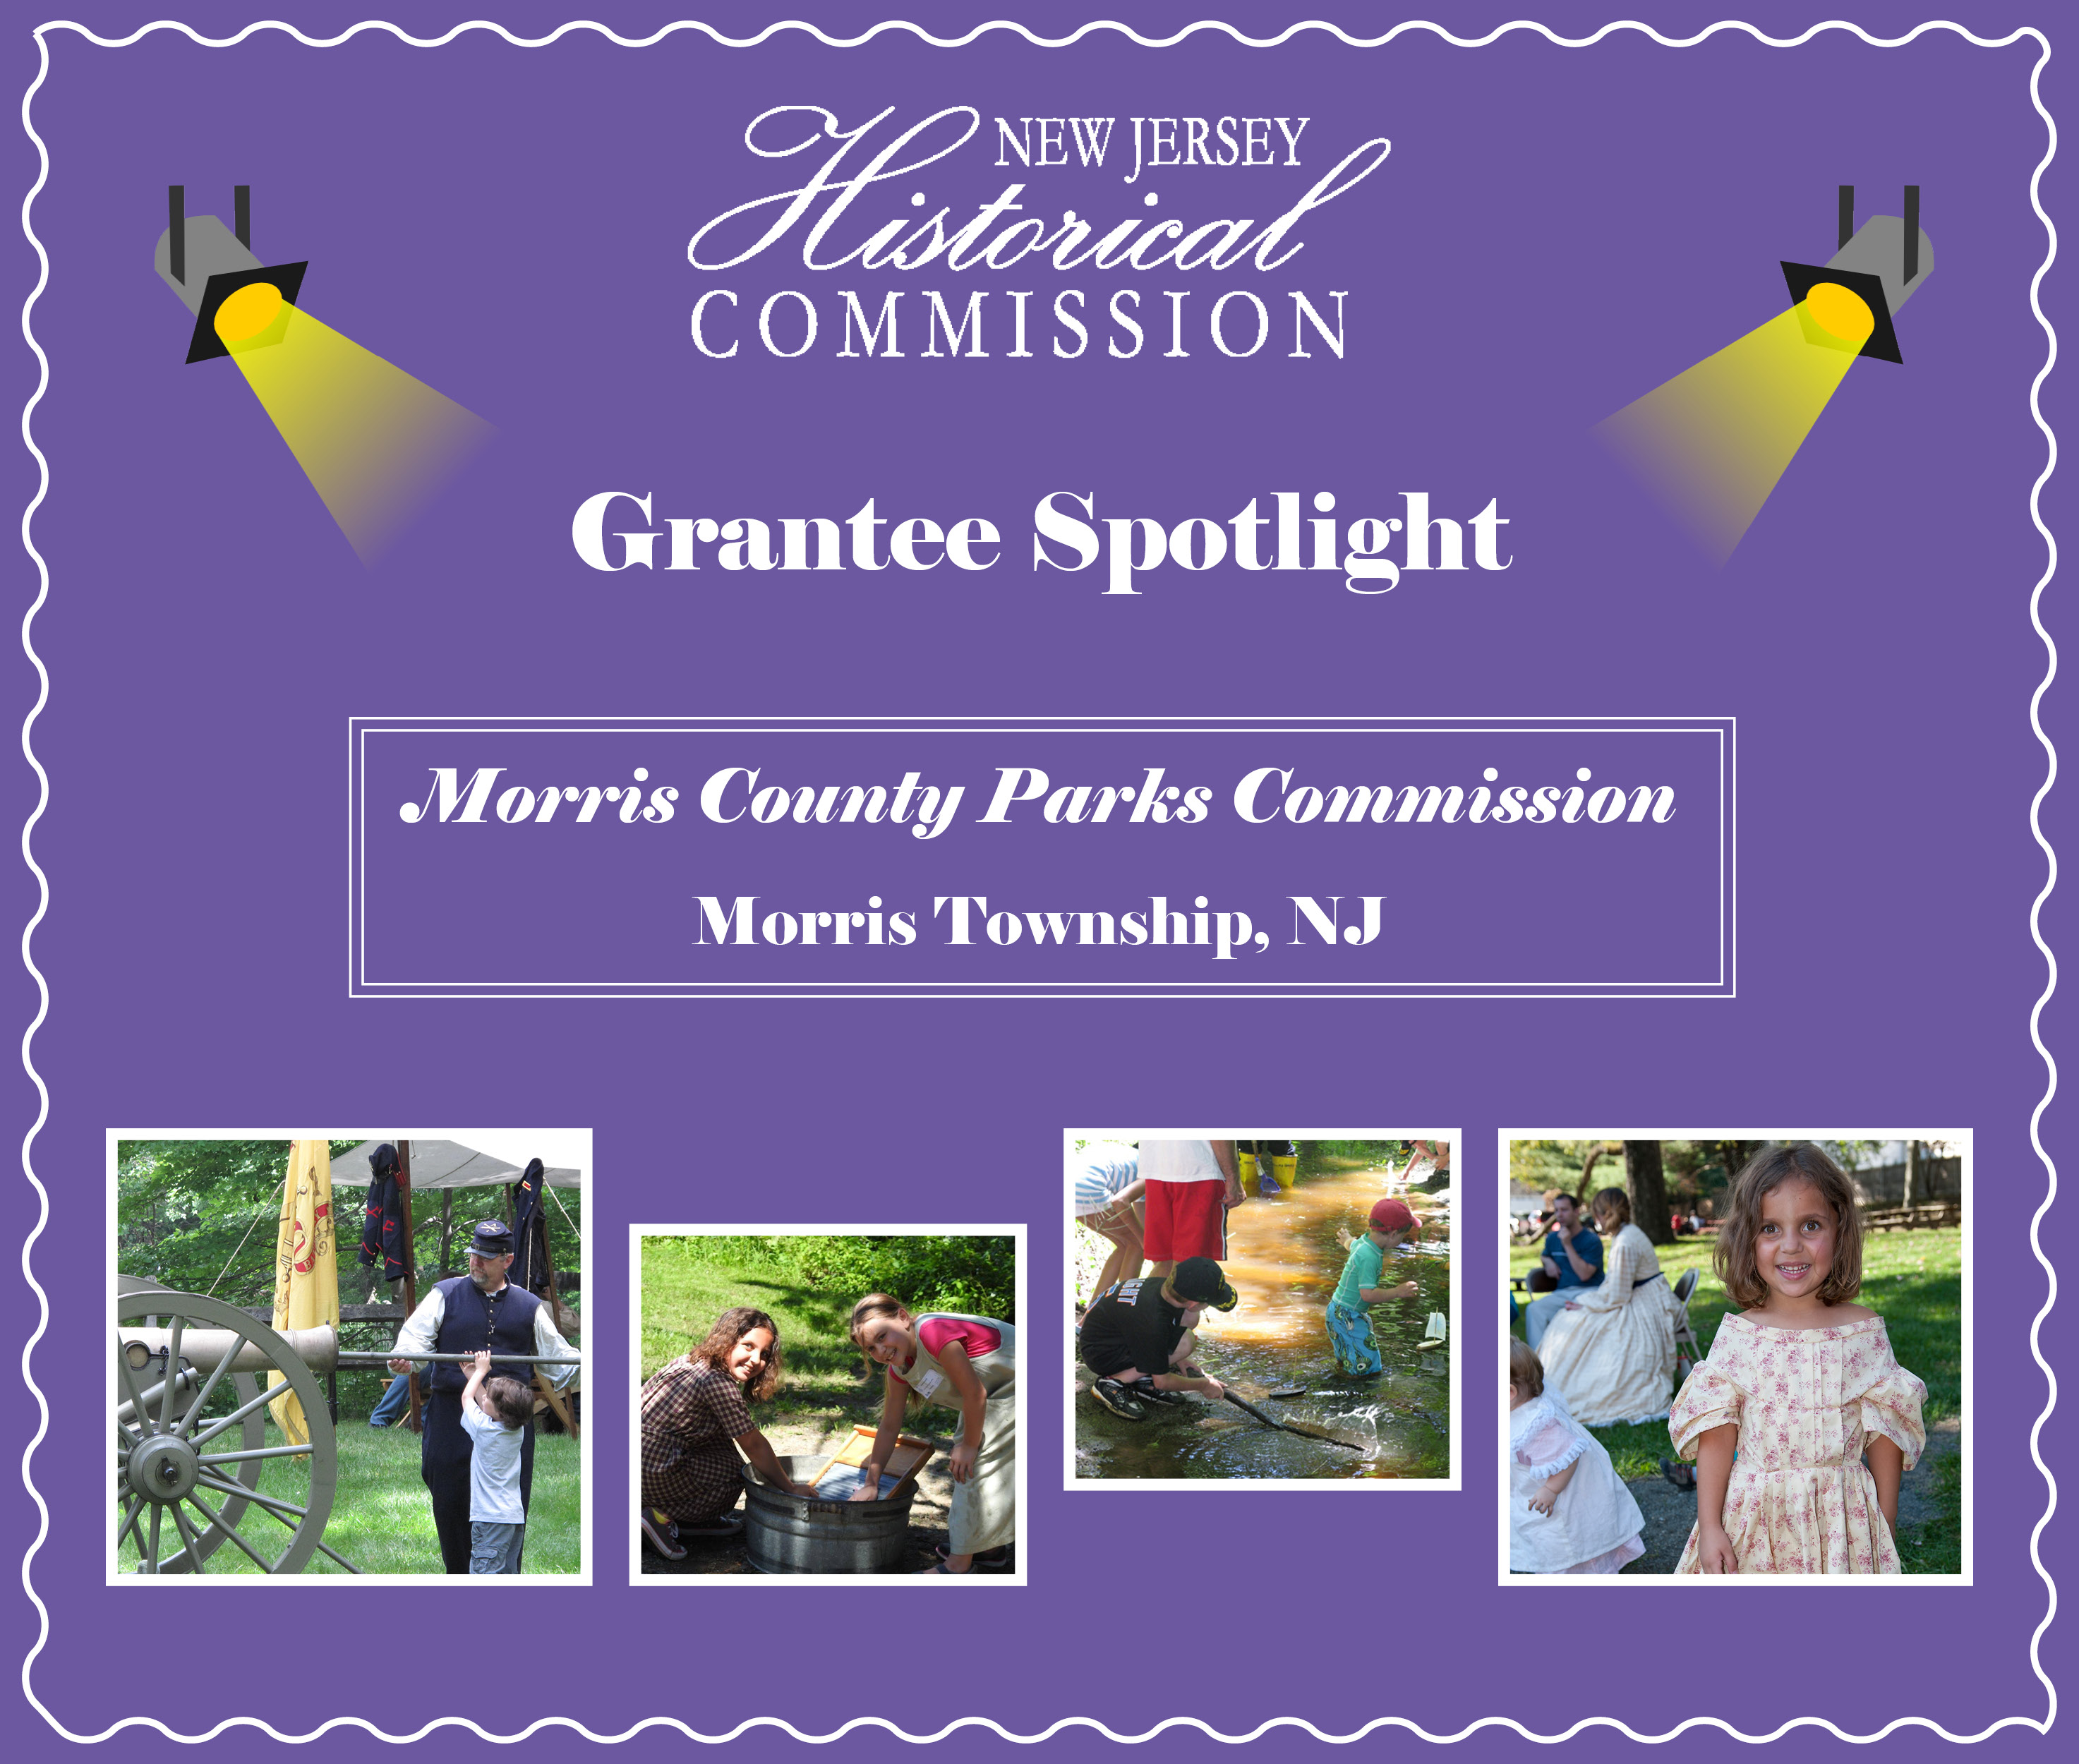 New Jersey Historical Commission (NJHC) Grantee Spotlight: Morris County Parks Commission